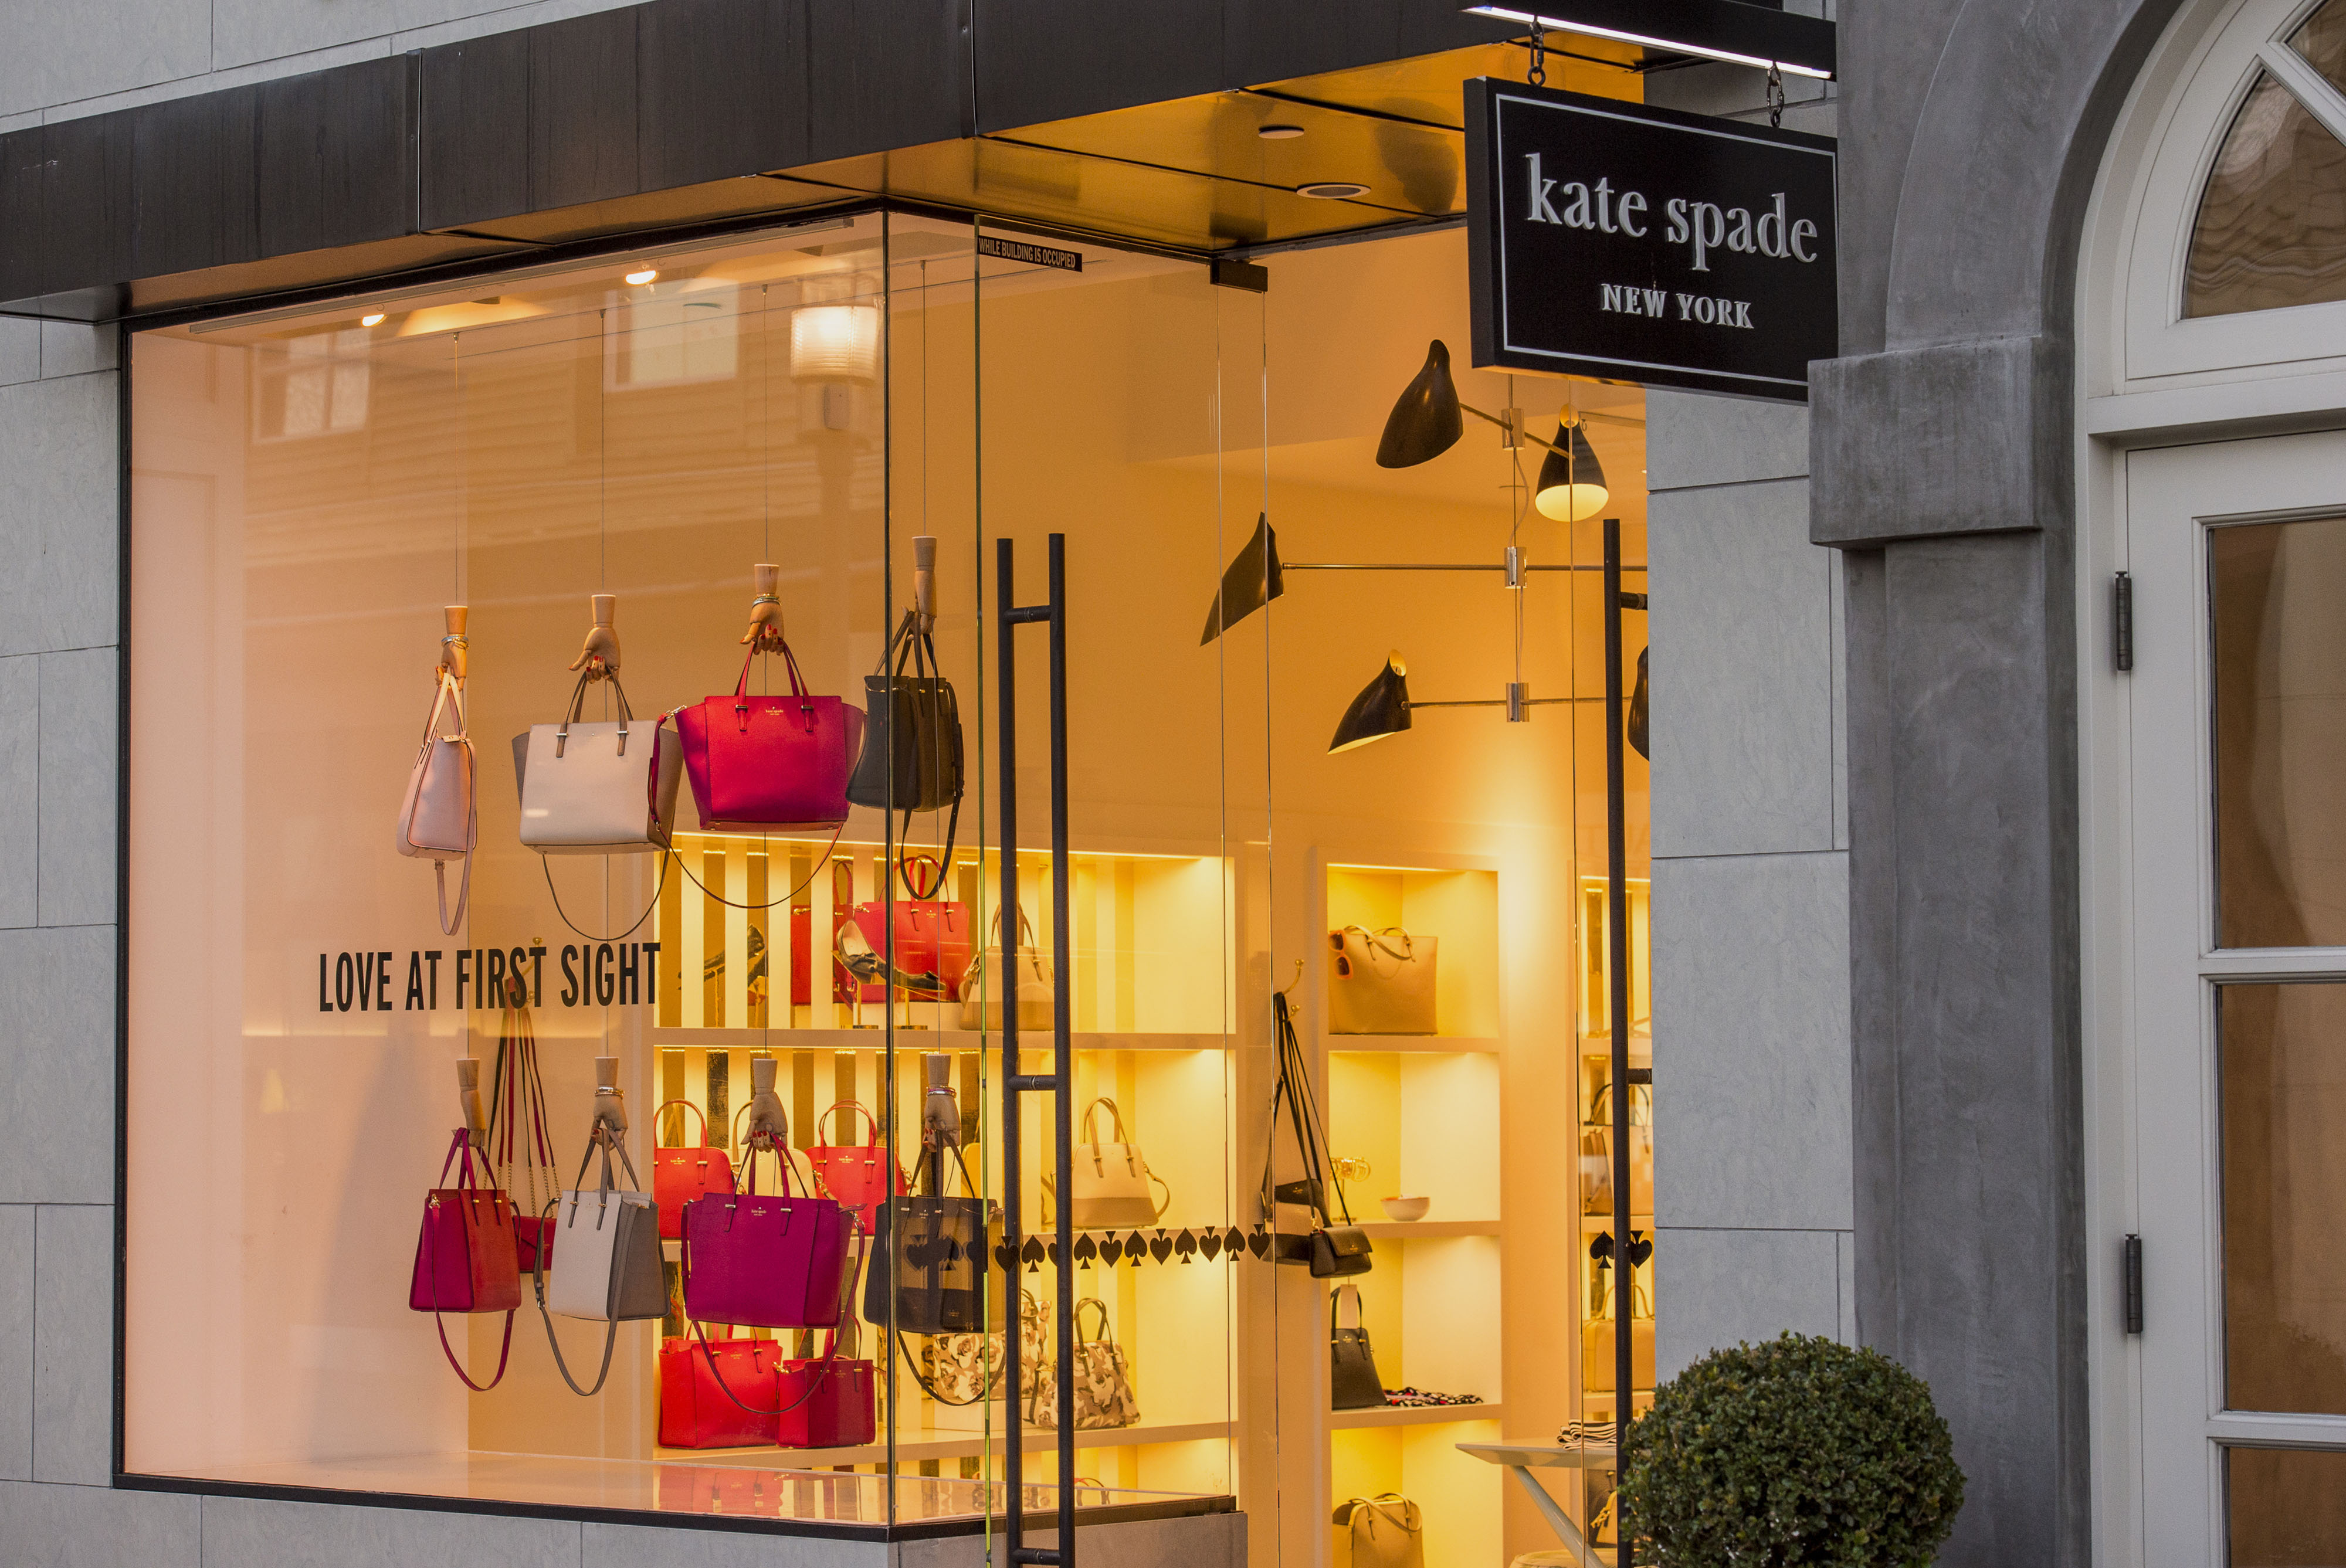 A Kate Spade & Co. Store Ahead Of Earnings Figures